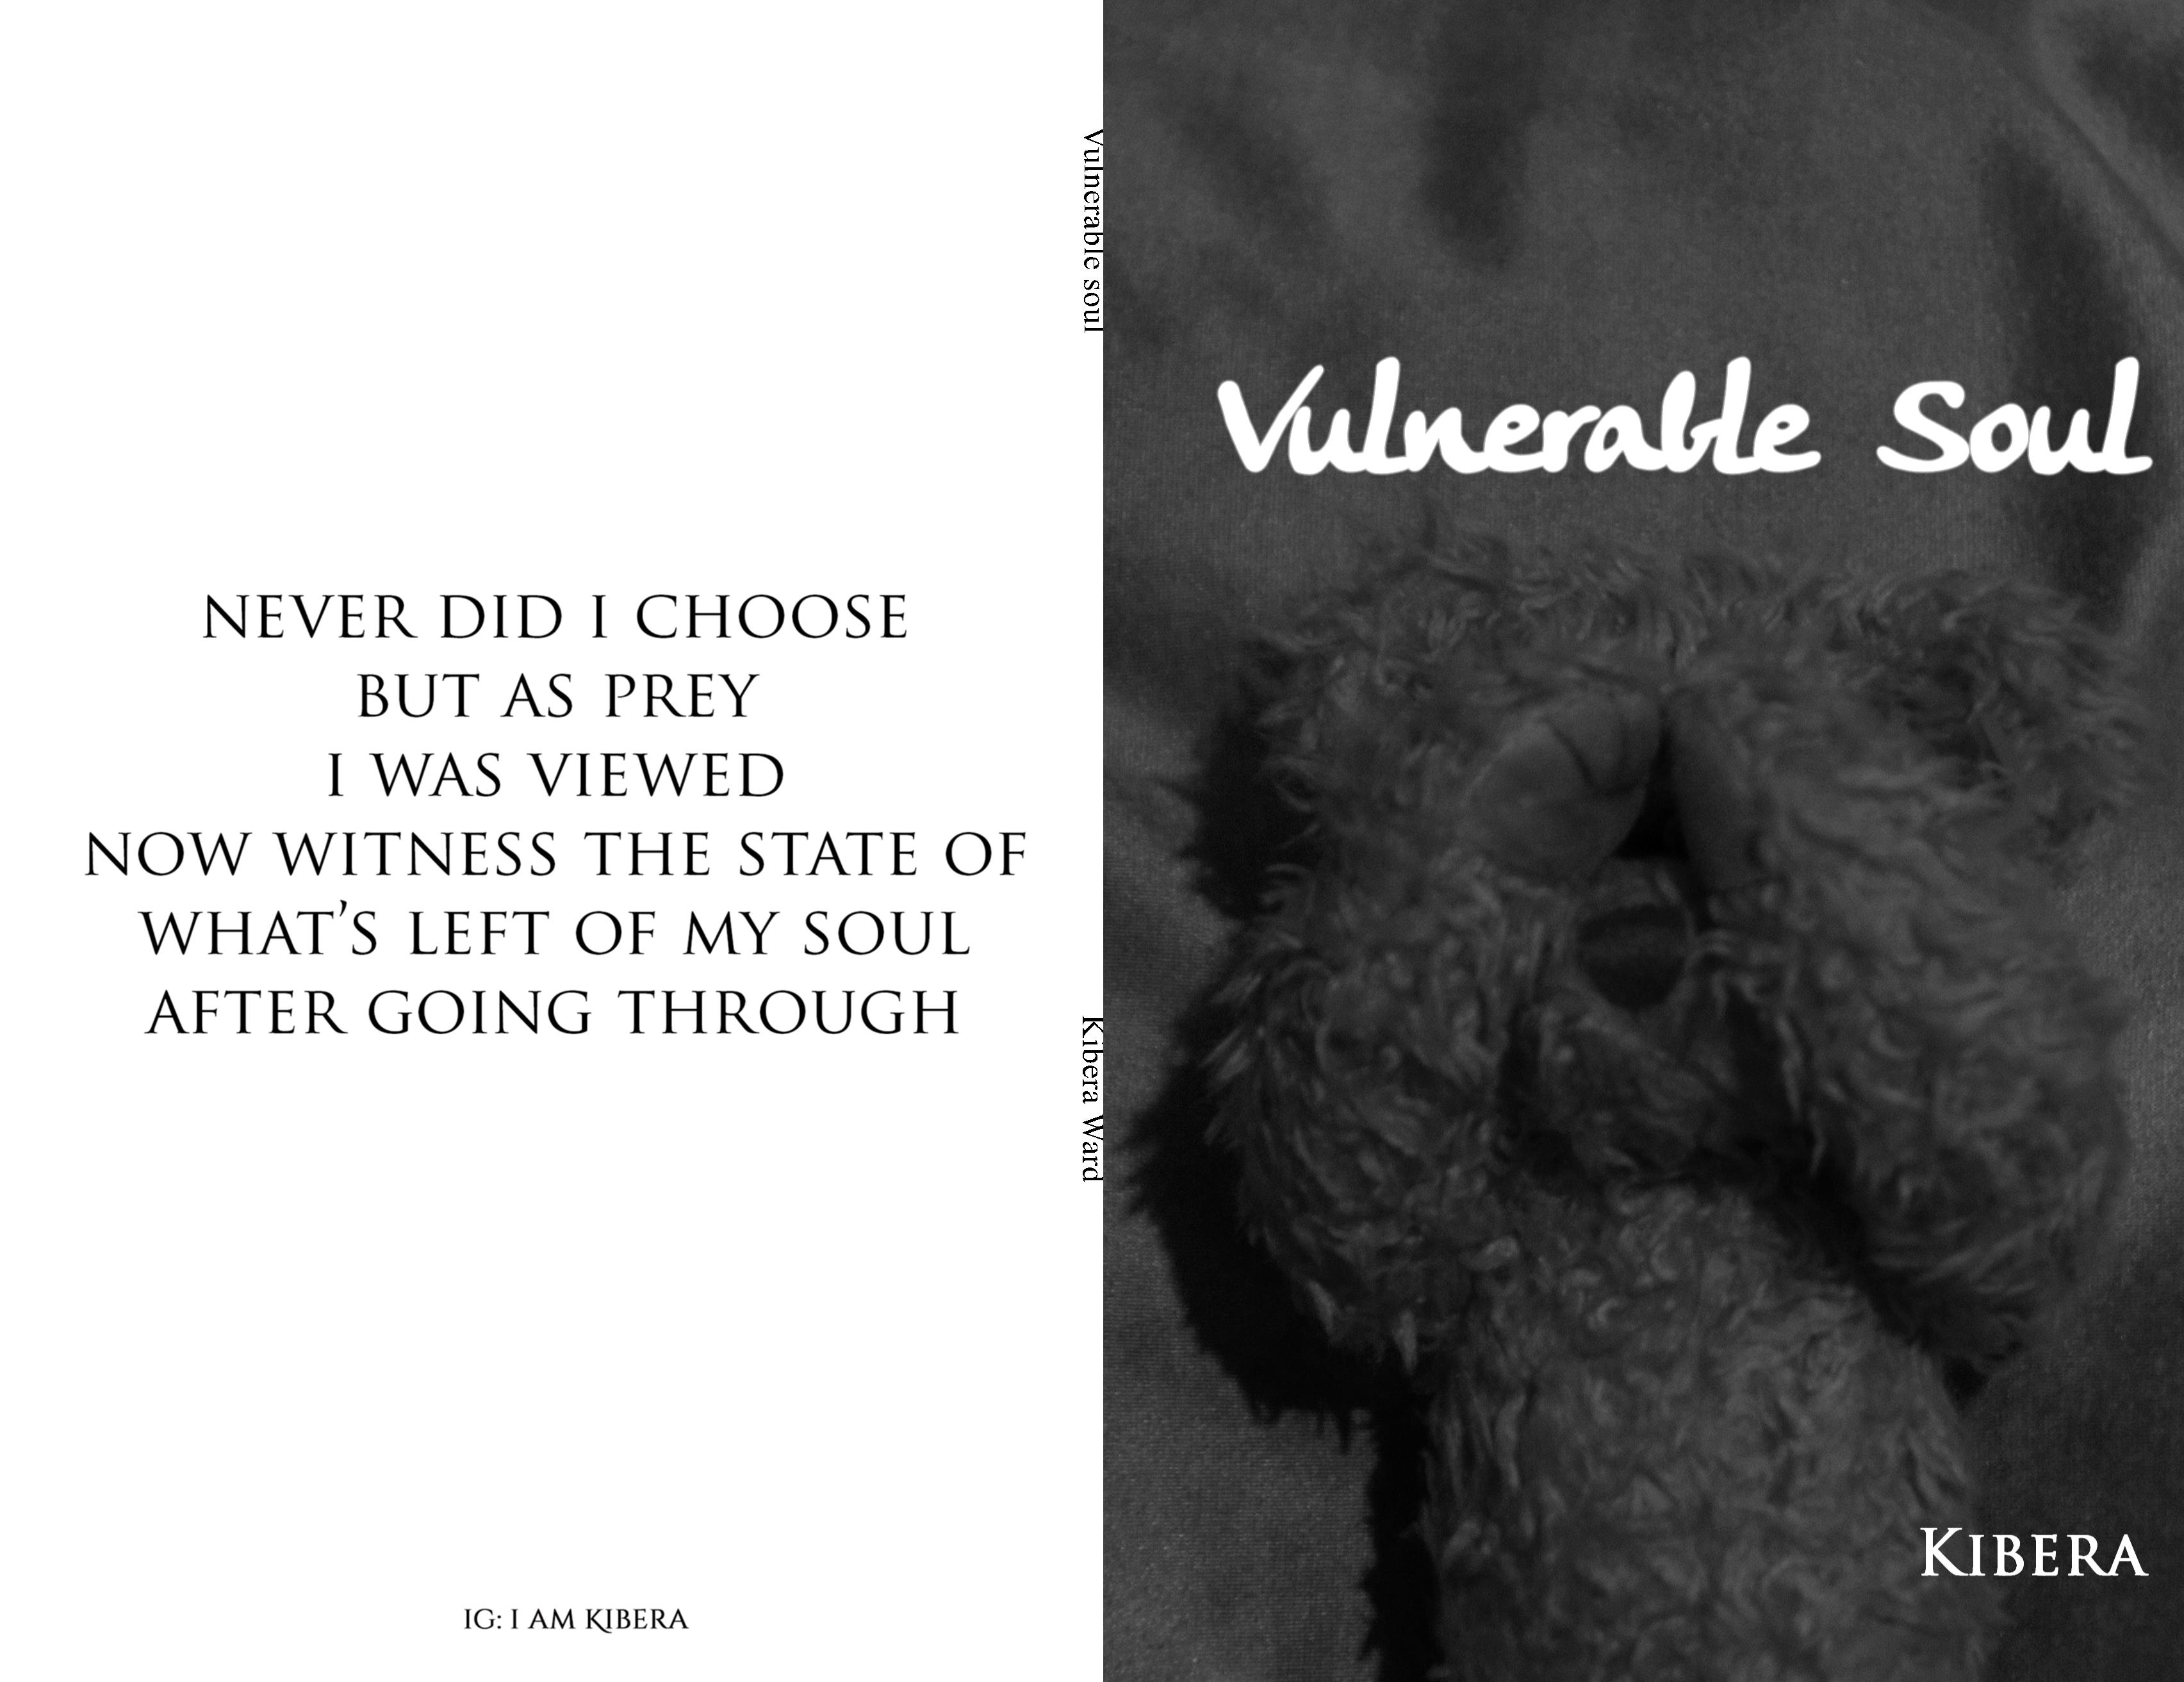 Vulnerable soul cover image